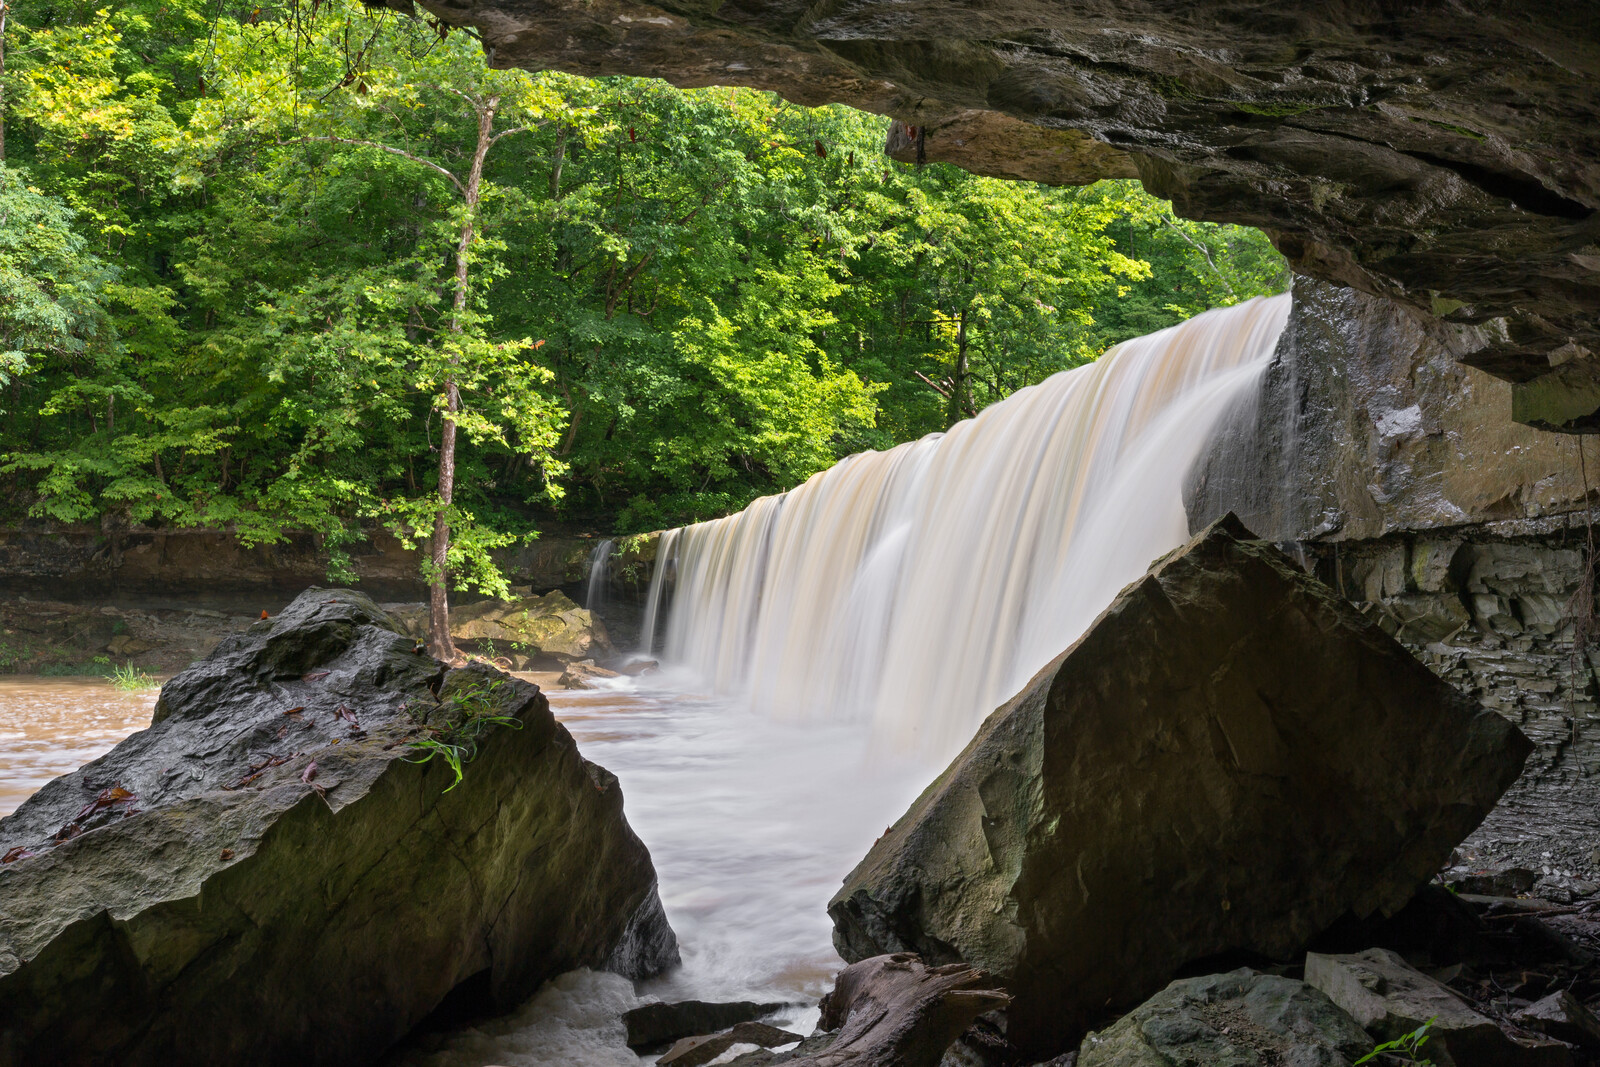 Sunny day at Anderson falls with an overhanging rock formation with greenery on the other side of the falls, near columbus, Indiana